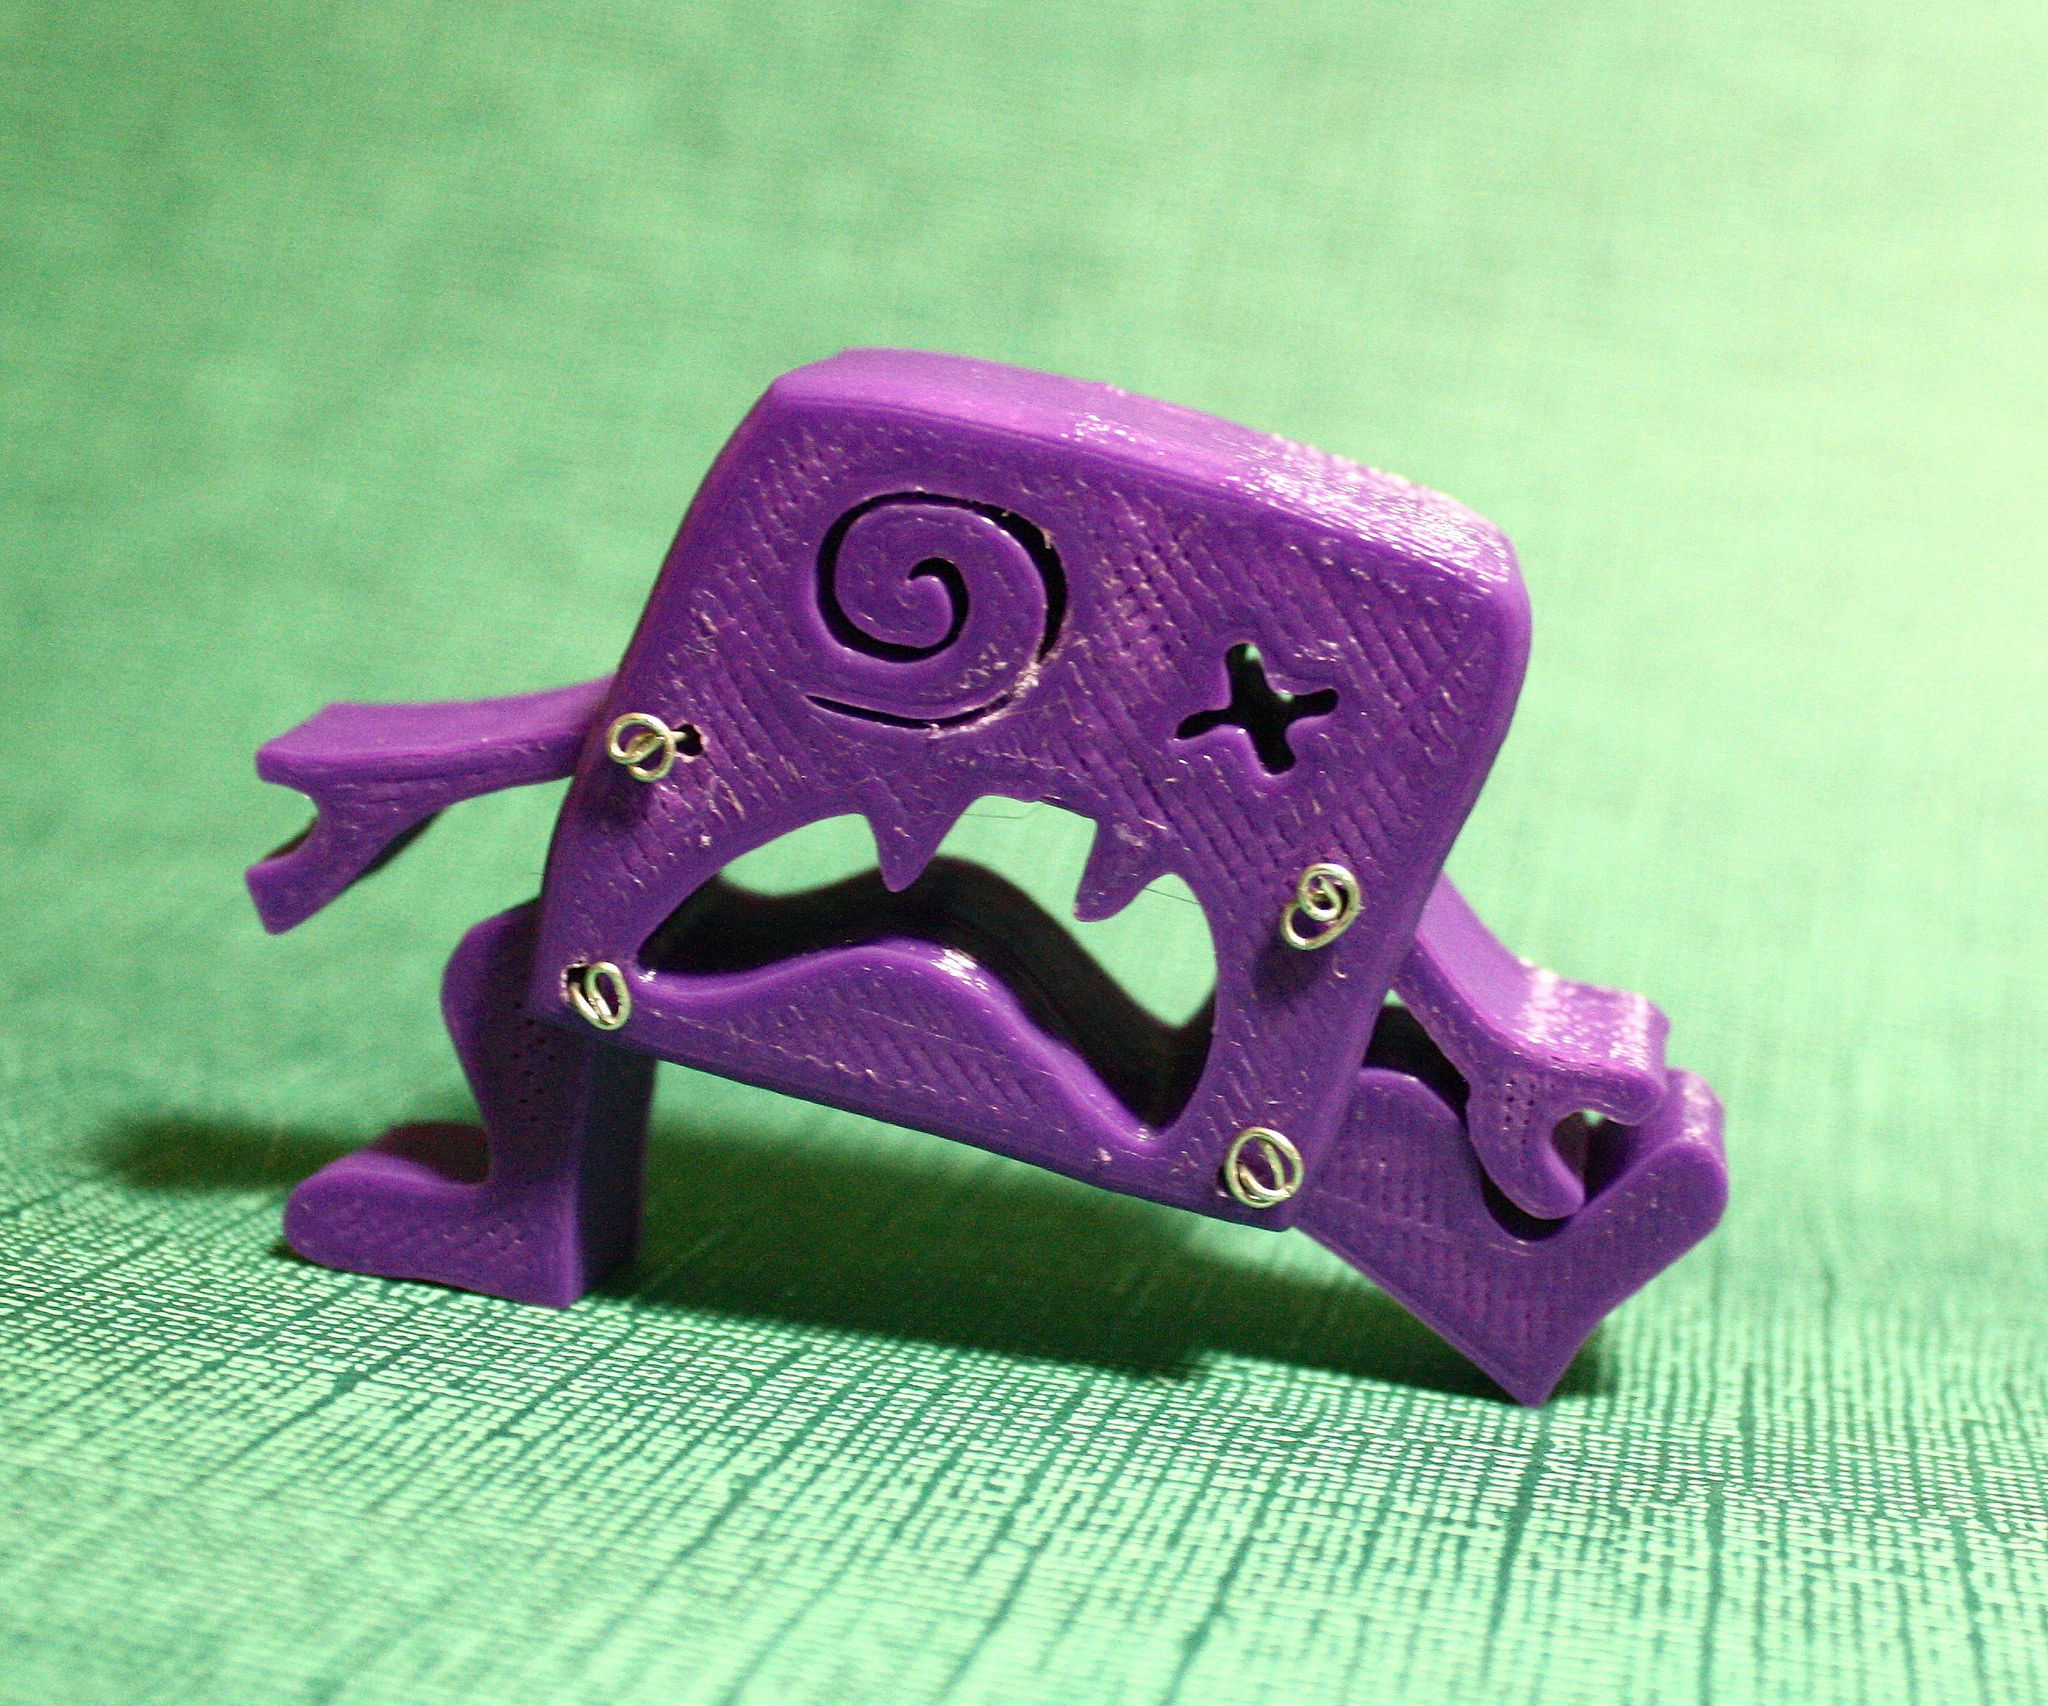 3D Printed Monster from 2D Drawing in 123D Design